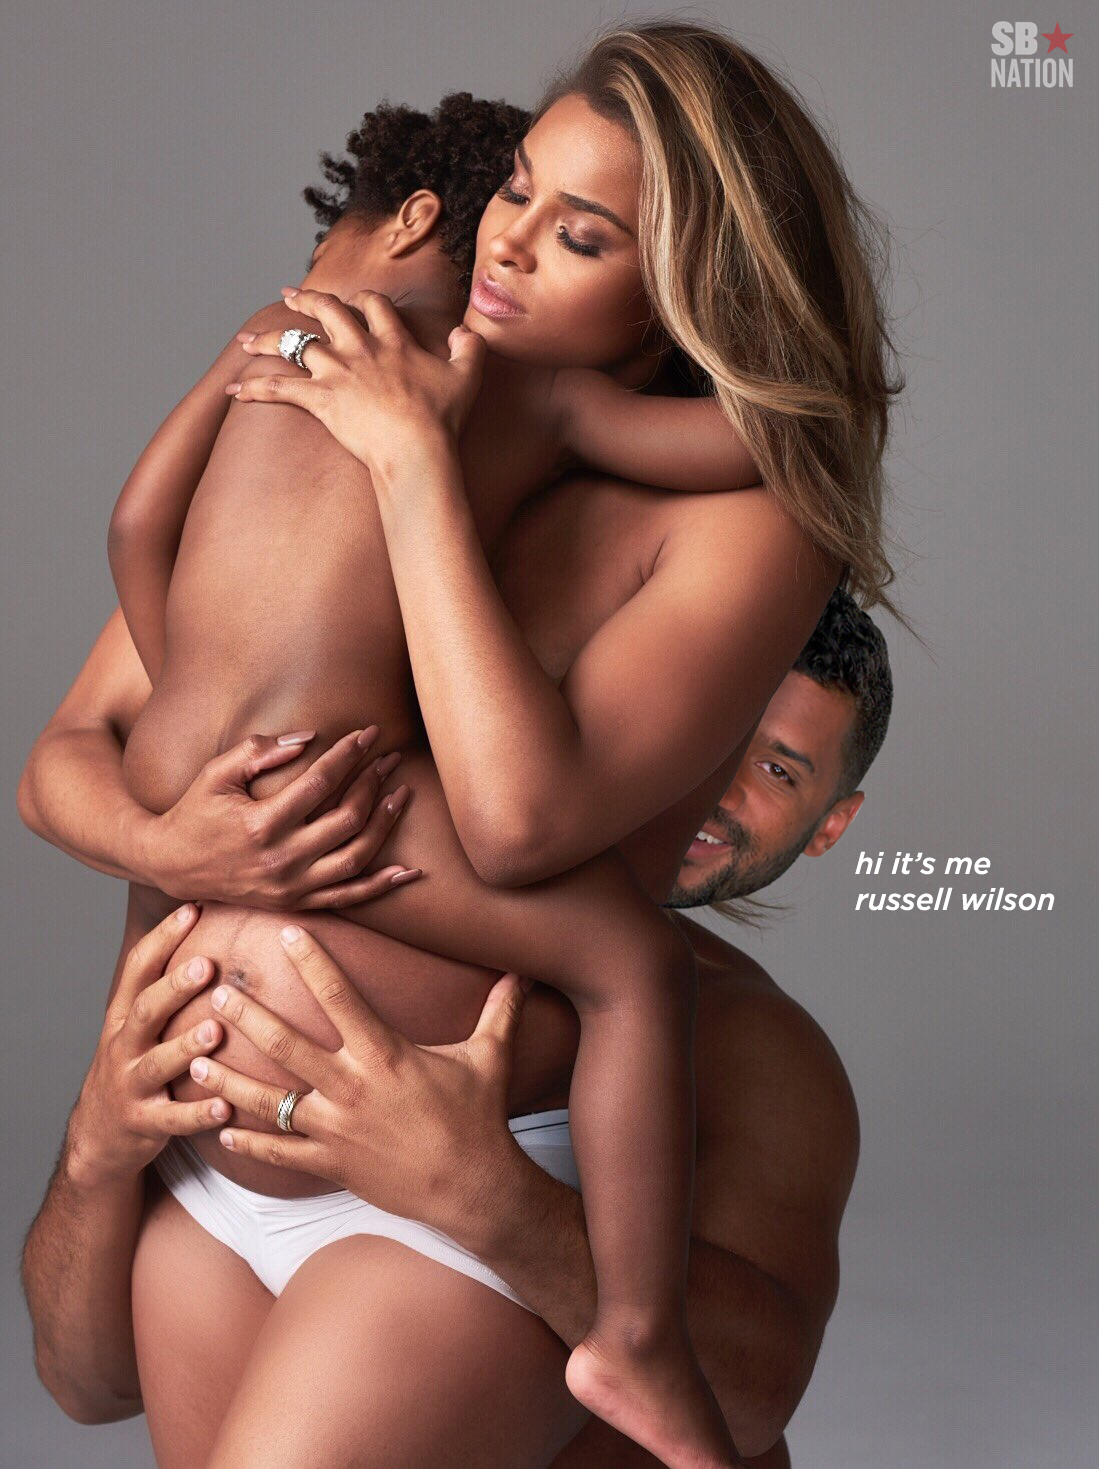 This bizarre Ciara and Russell Wilson family photo raises so many questions